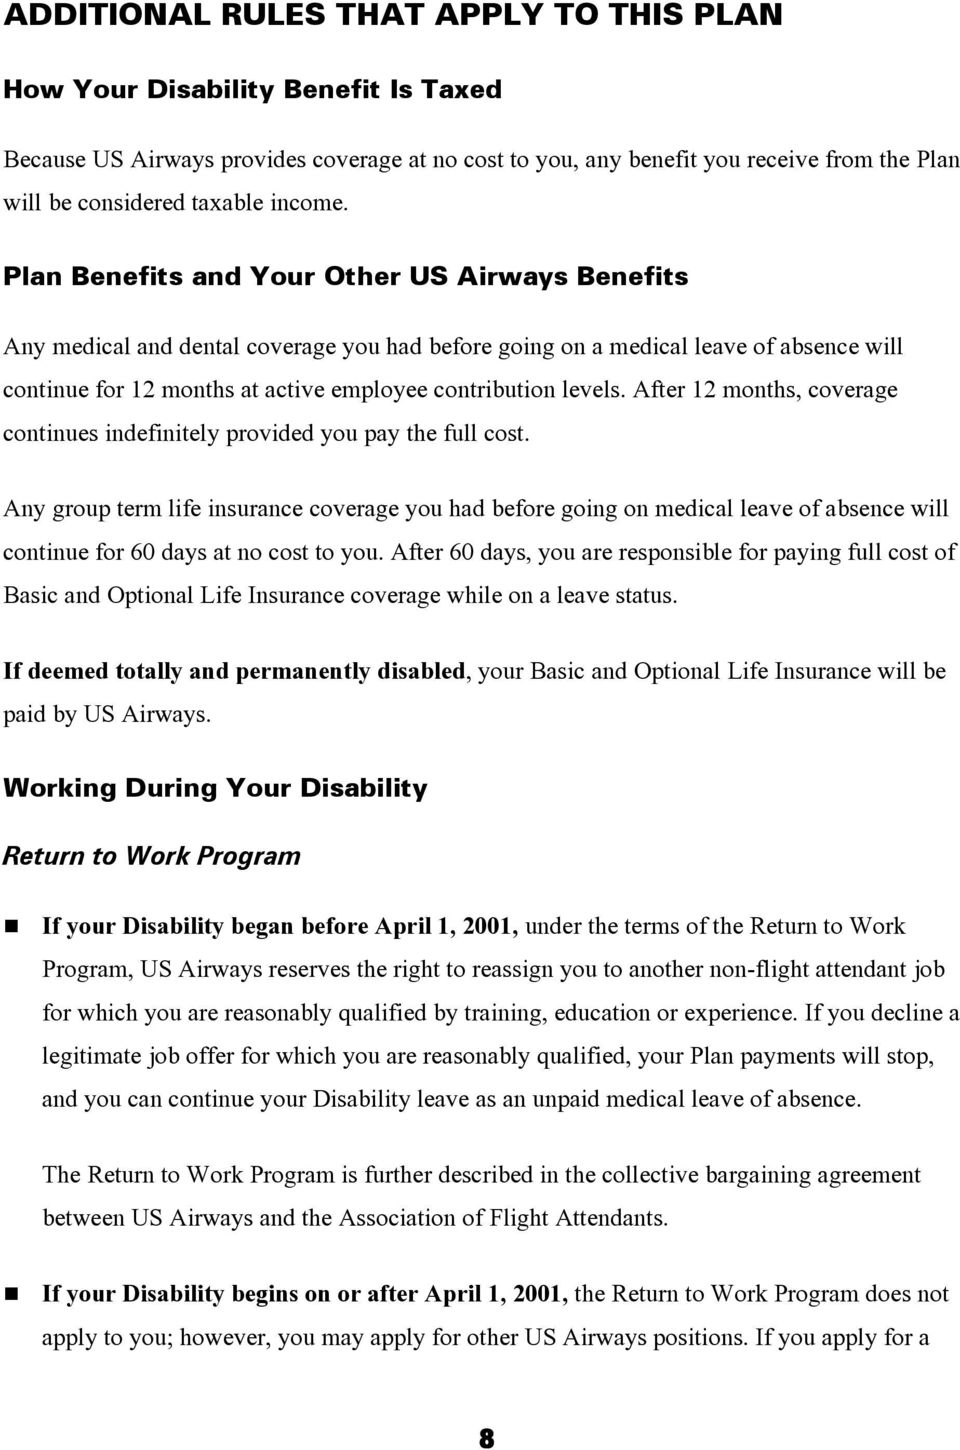 Plan Benefits and Your Other US Airways Benefits Any medical and dental coverage you had before going on a medical leave of absence will continue for 12 months at active employee contribution levels.